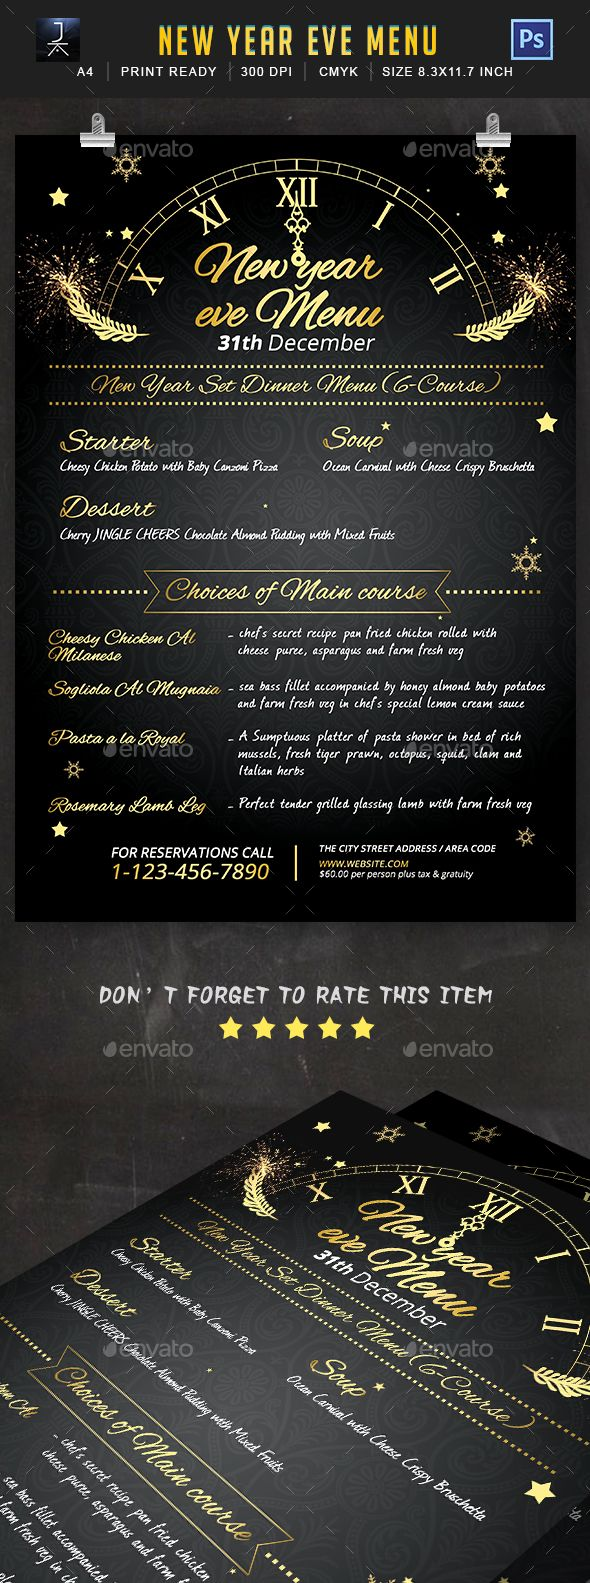 new year eve menu template psd